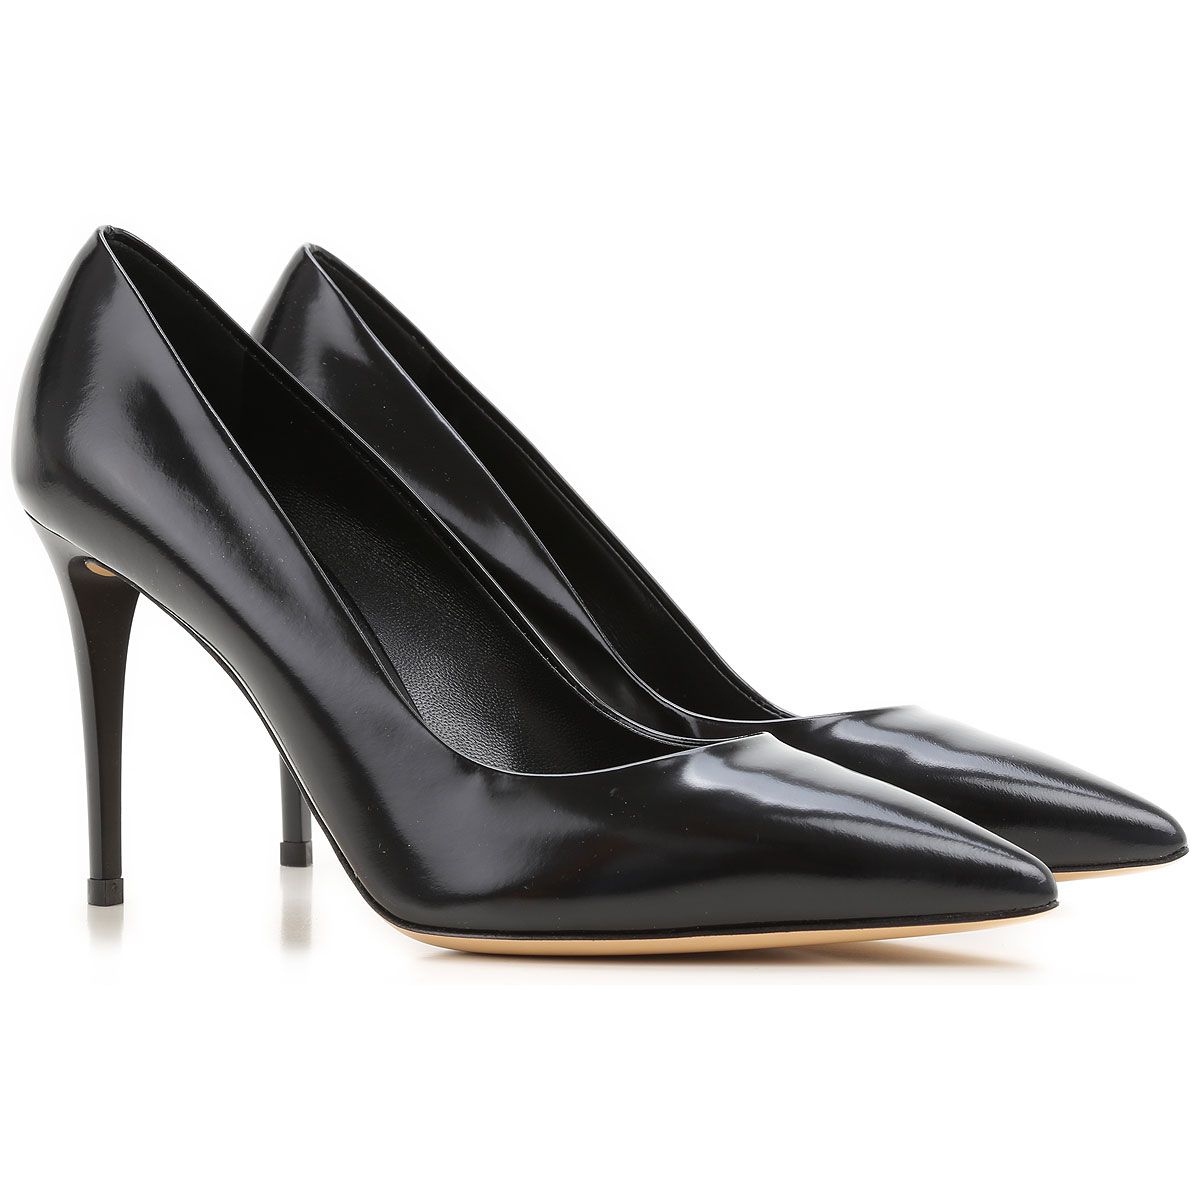 Nina Lilou Pumps & High Heels for Women in Outlet Black USA - GOOFASH